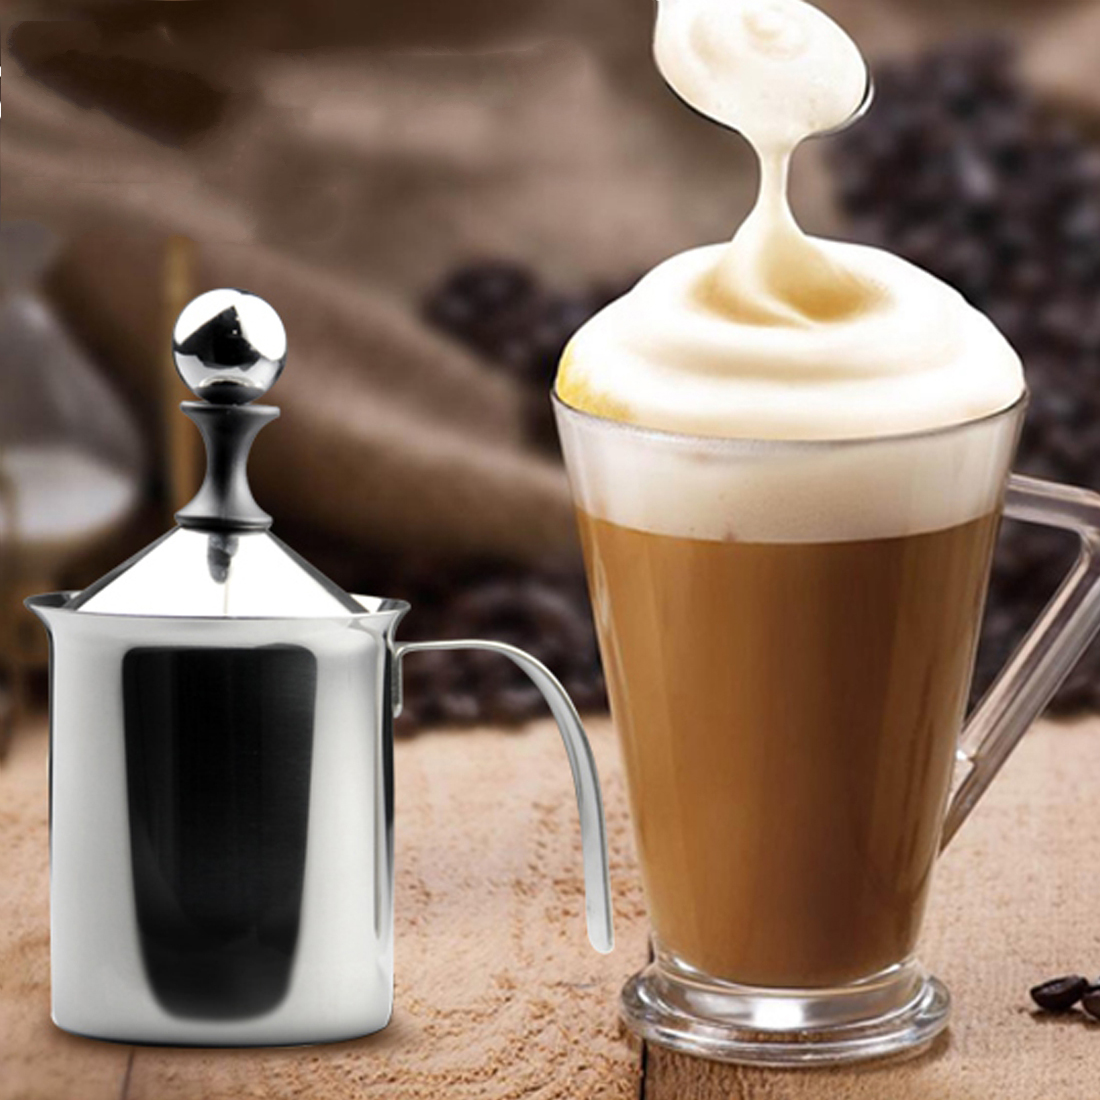 Top Stainless Steel Pump Milk Frother Creamer Foam Cappuccino 400ML 800ML Coffee Double Mesh Froth Screen